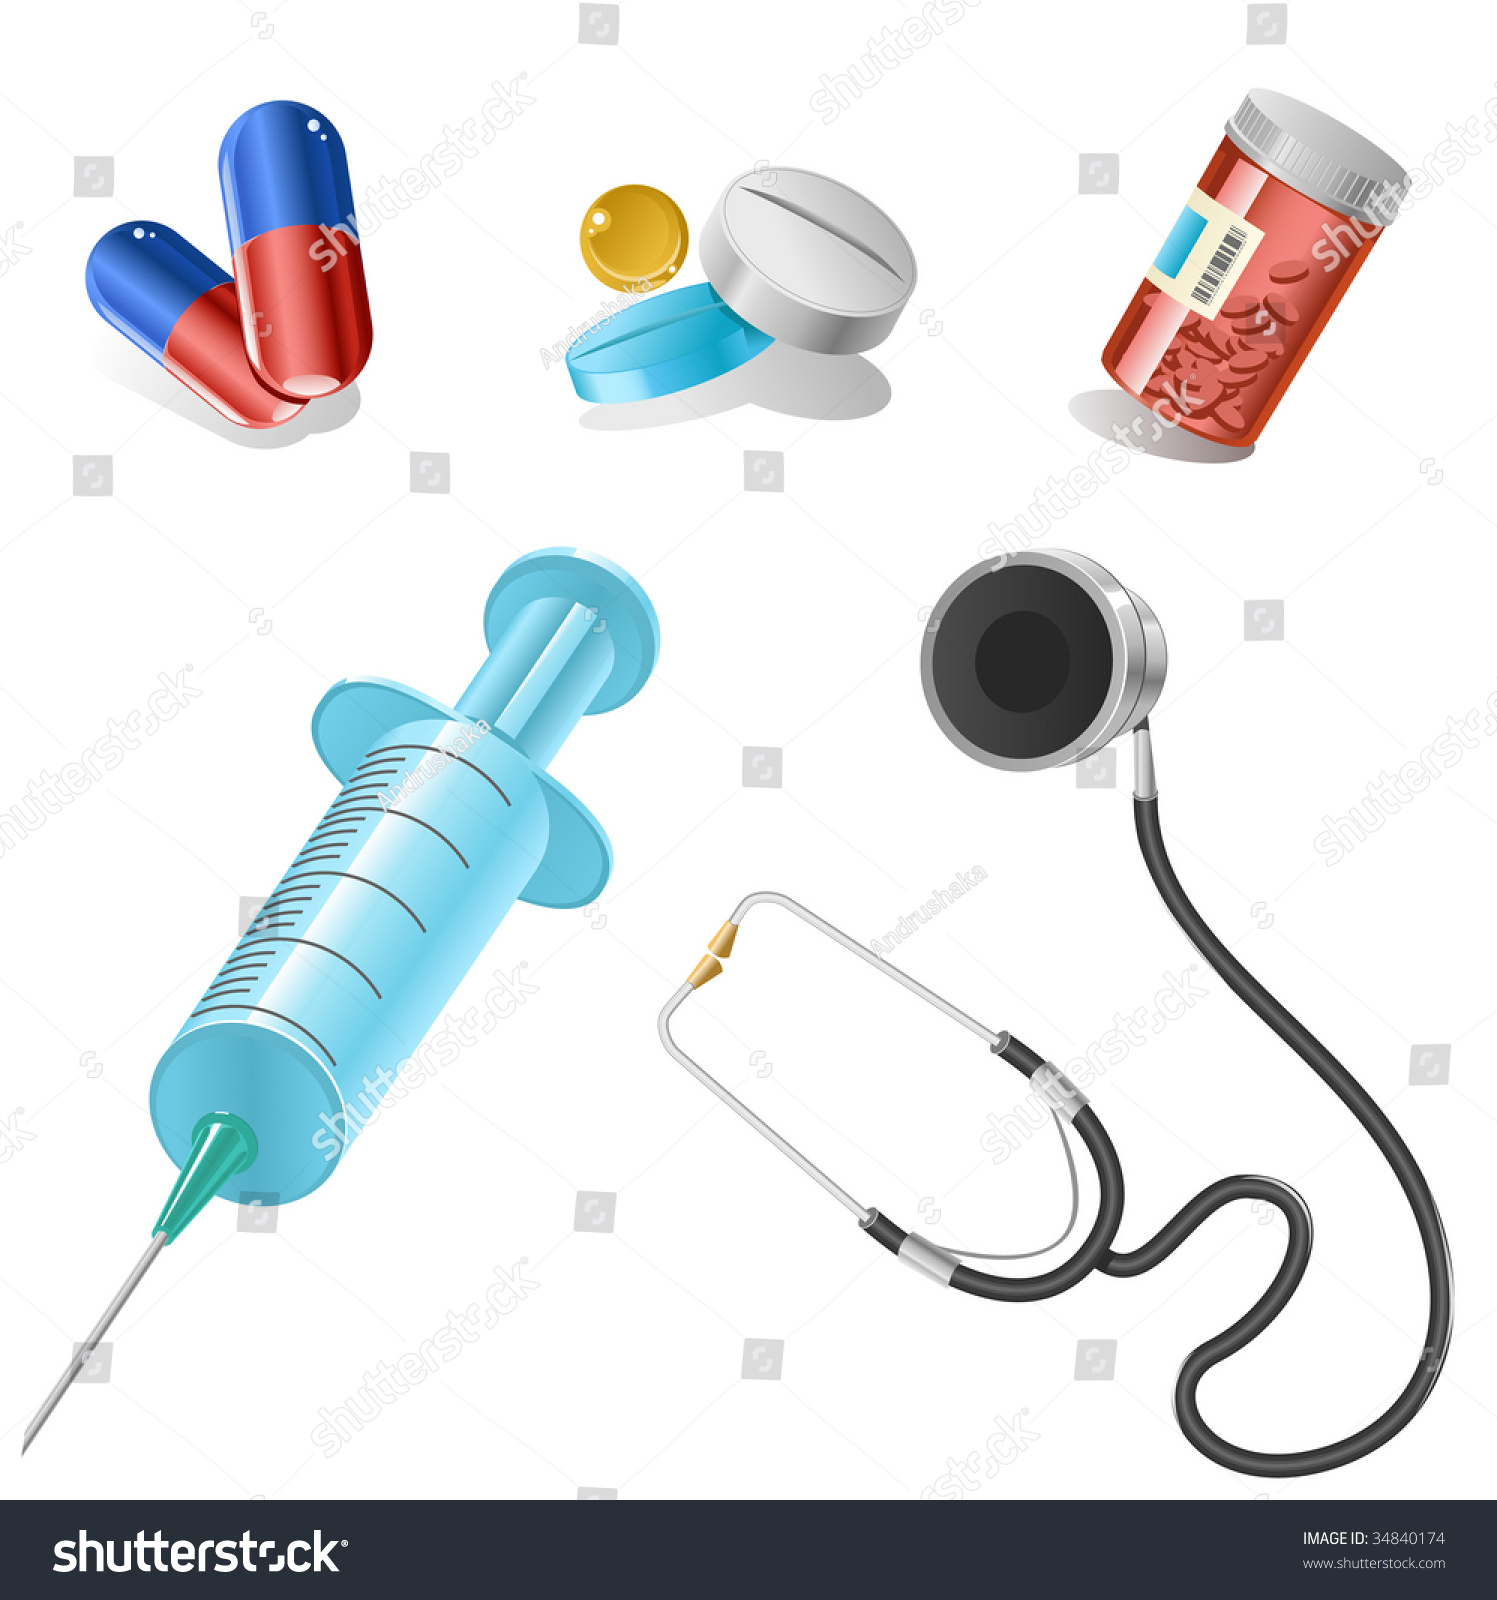 Still Life Of Medical Items Used By Doctors To Treat Stock Photos ...